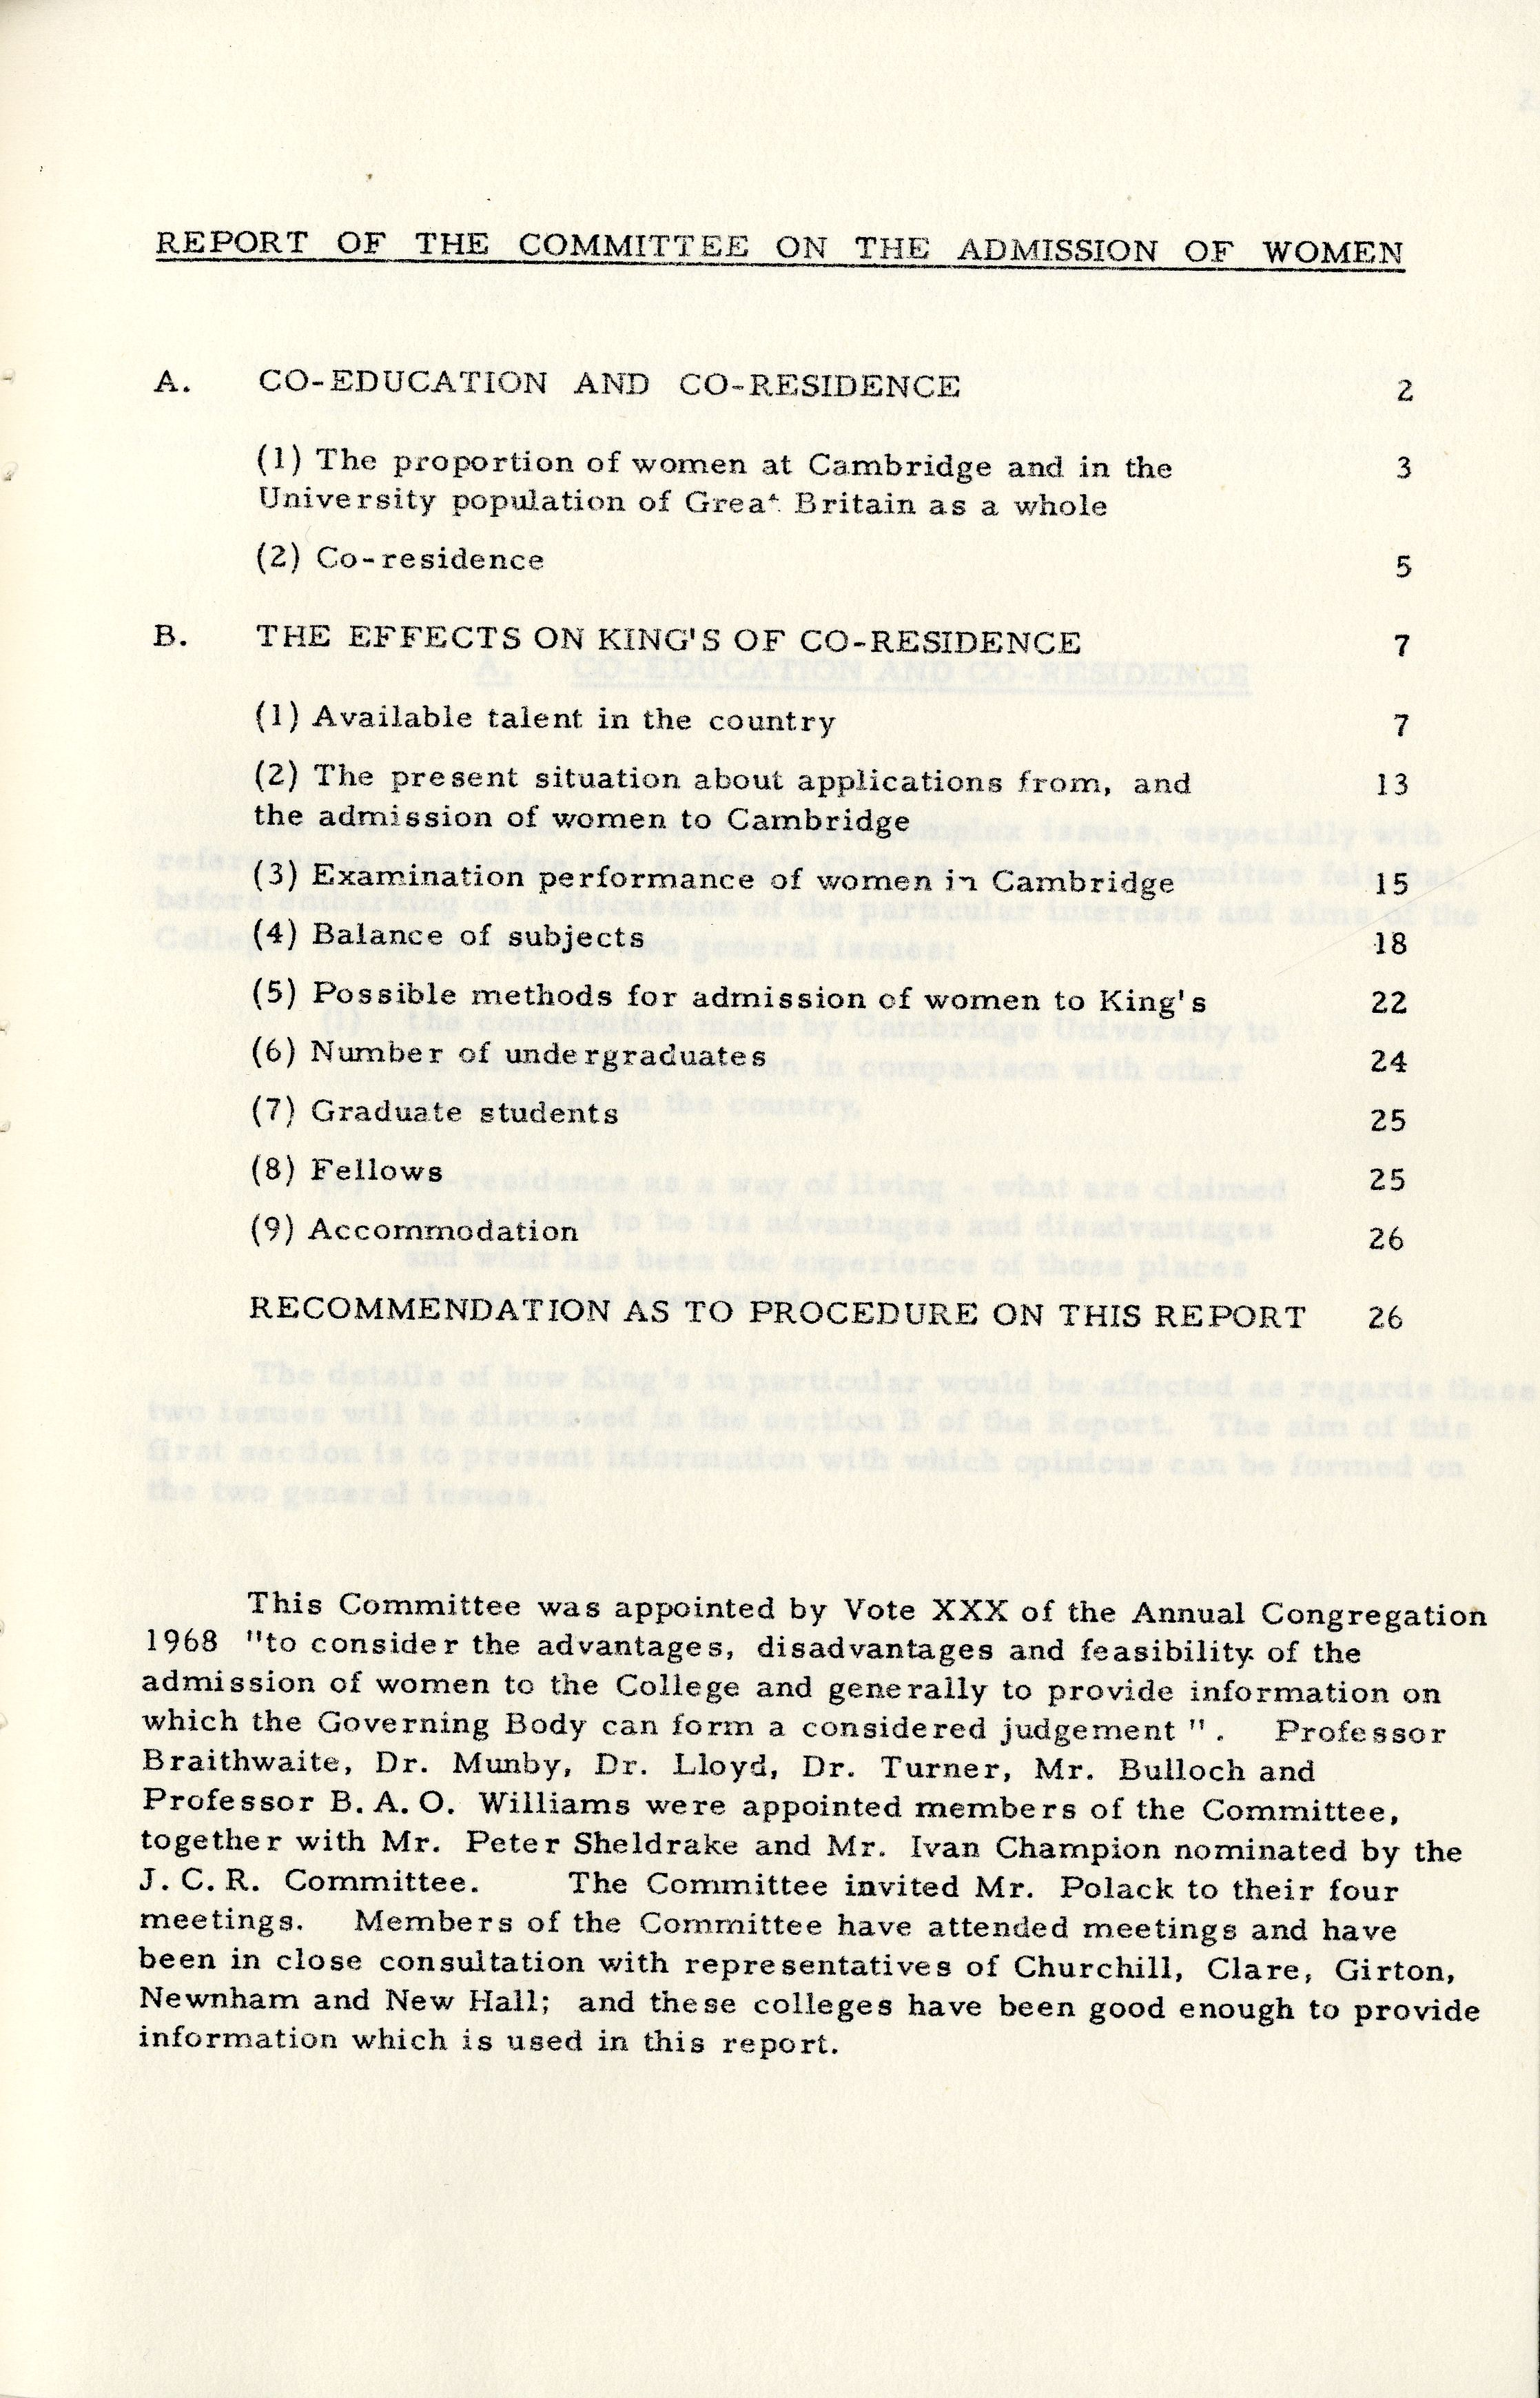 Subcommittee report to the Fellows, May 1969. Contents. [KCGB/4/1/1/22]